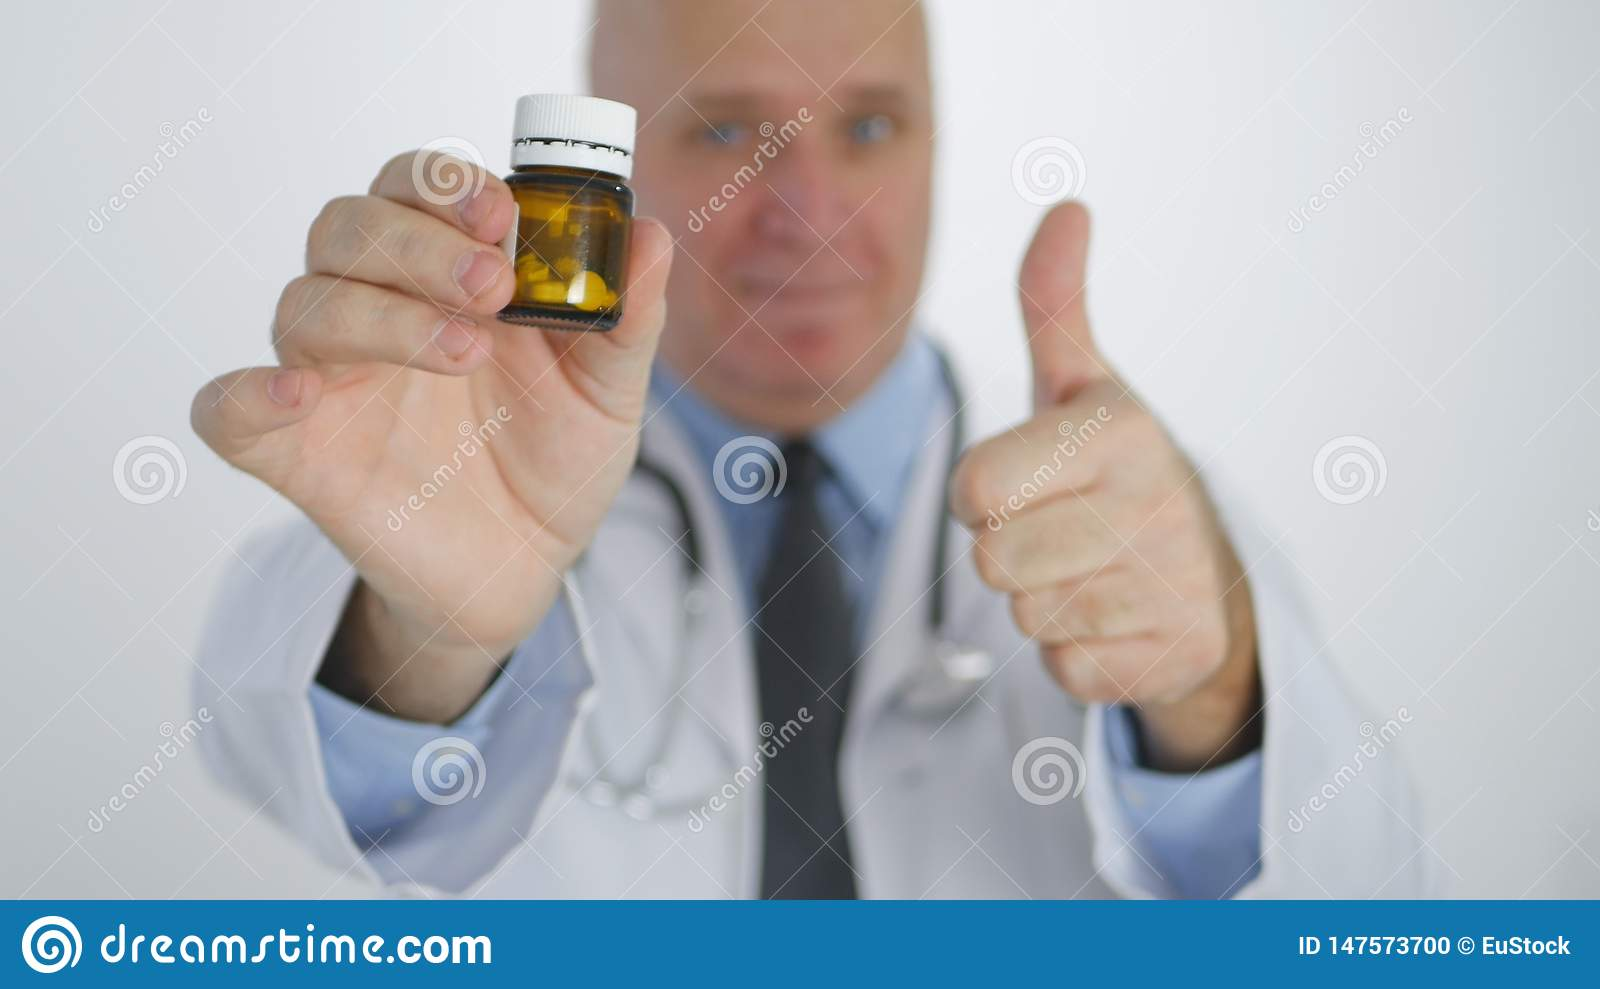 Doctor Image Thumbs Up Recommend Confident Medical Treatment with Vitamin Pills